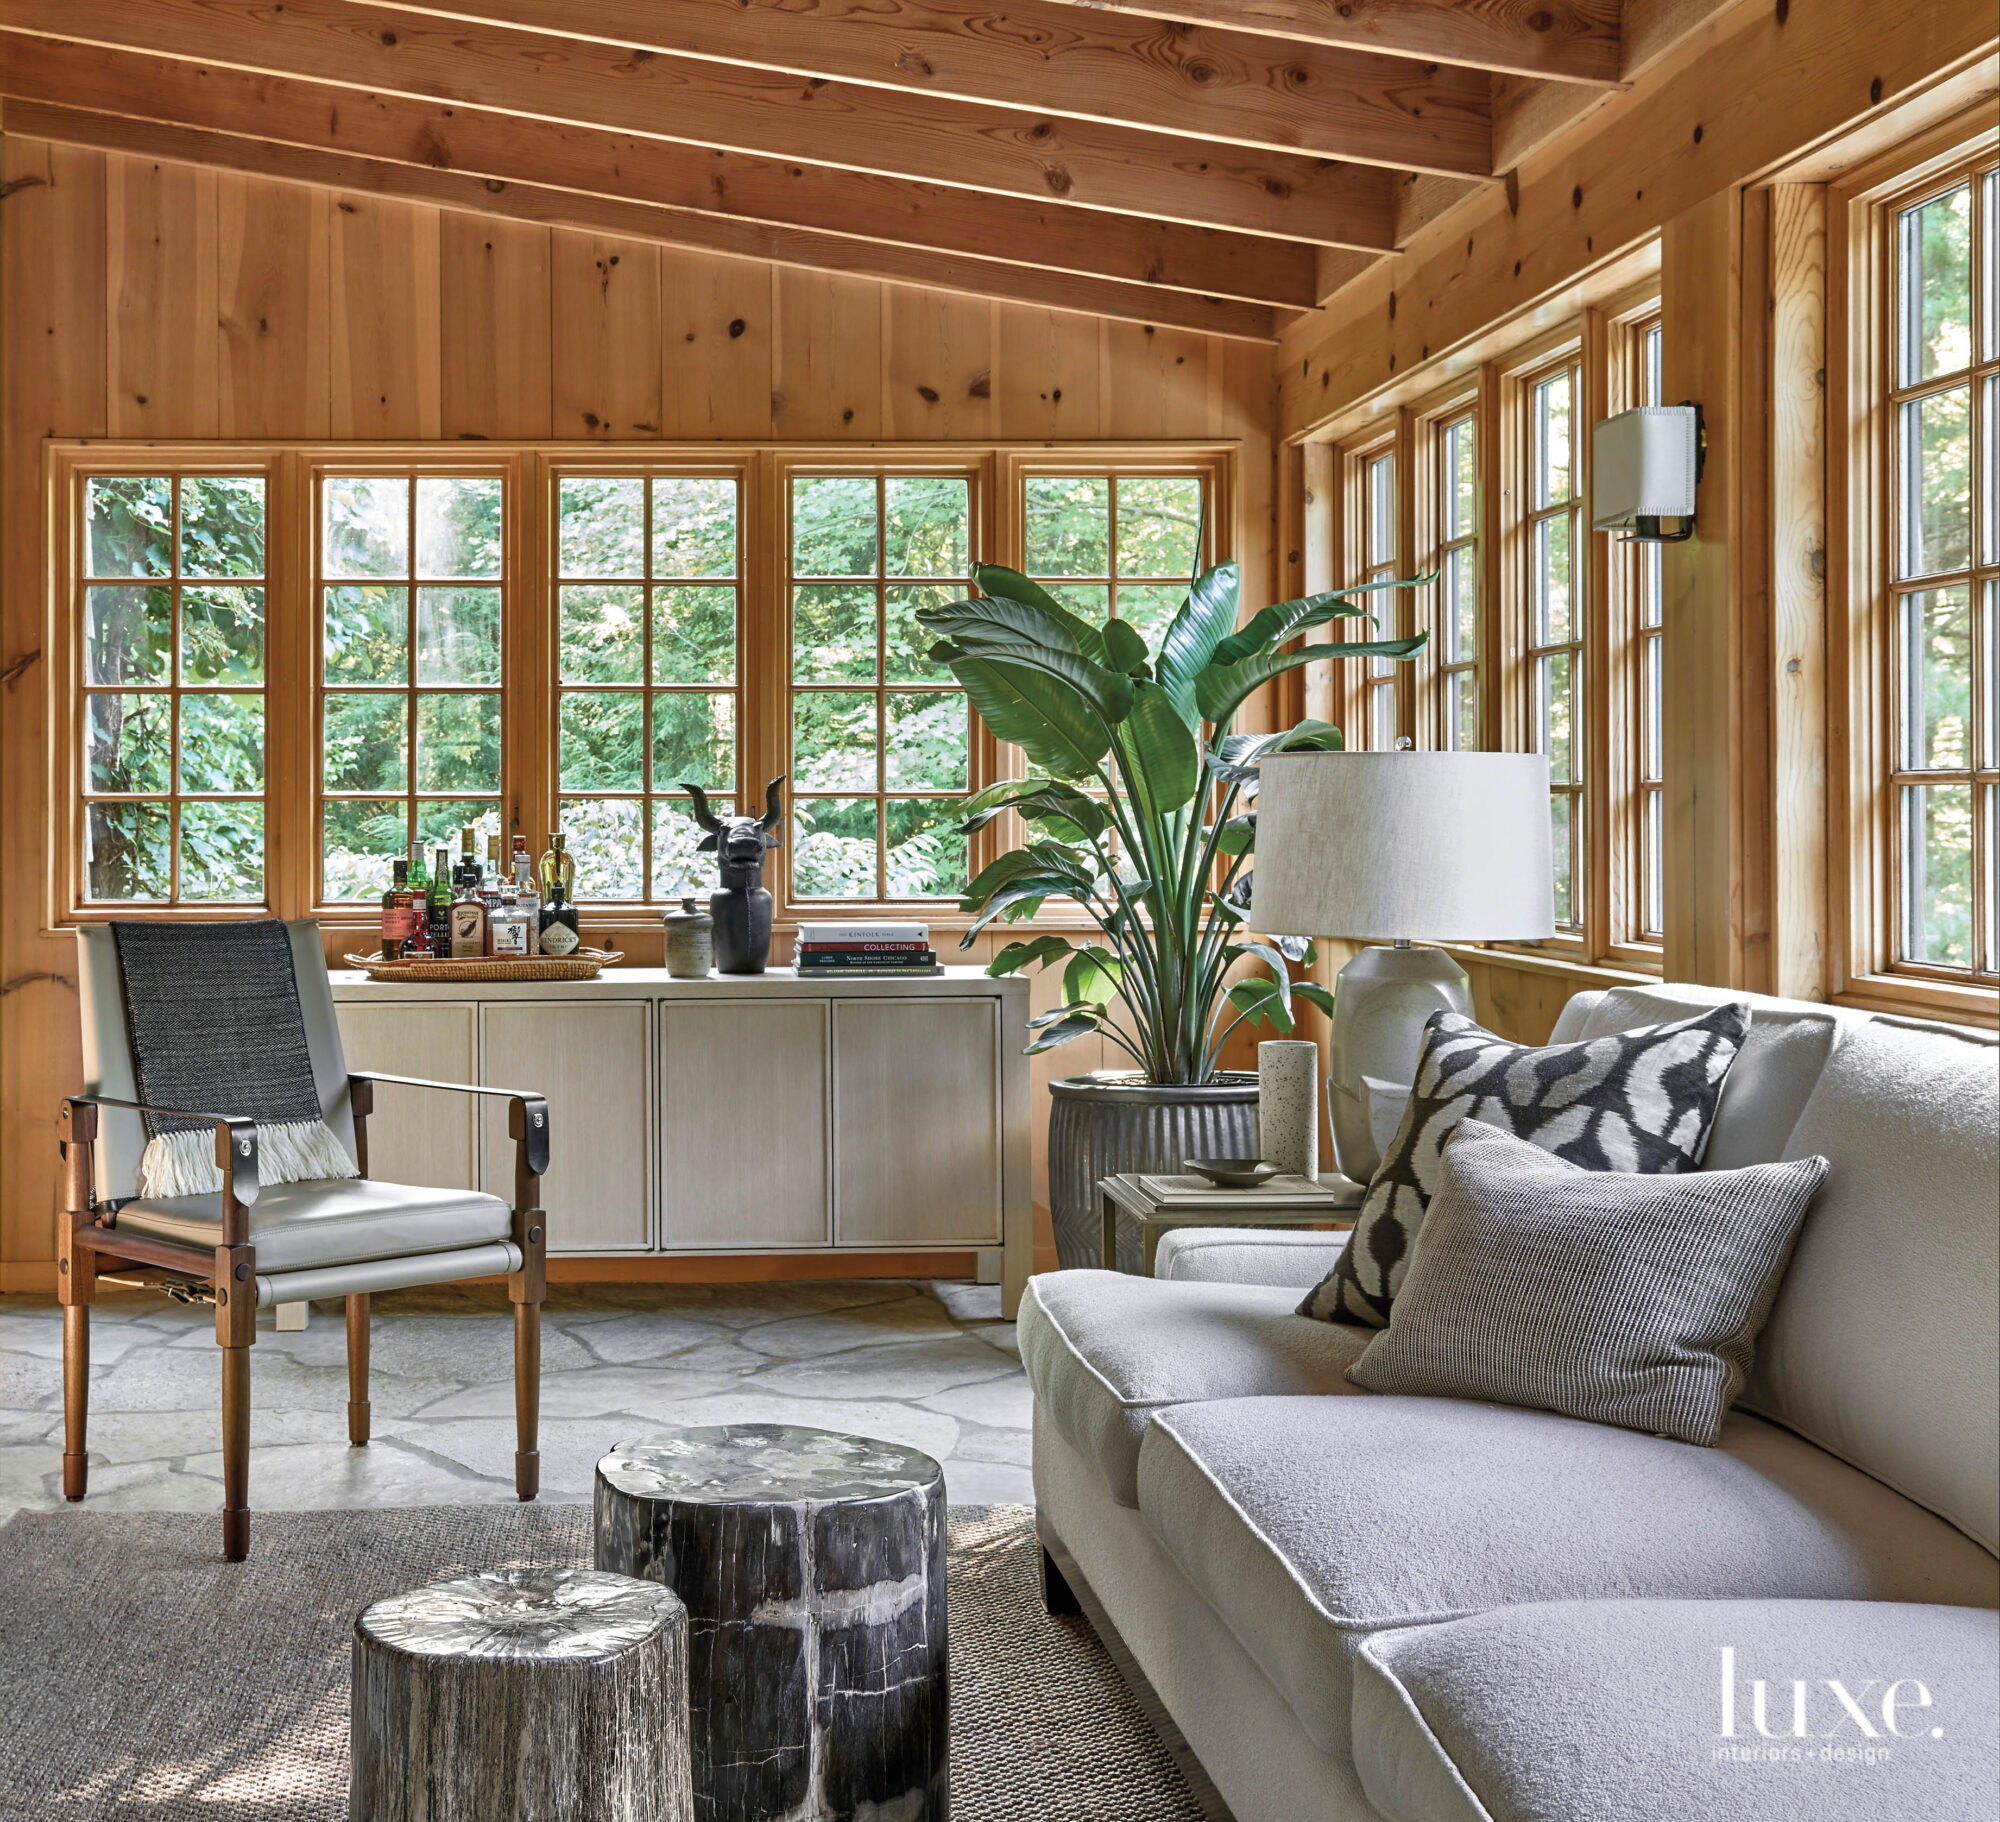 Elements From Far And Wide Come Together To Perfect This Chicago Design Duo S Rural Retreat Luxe Interiors Design